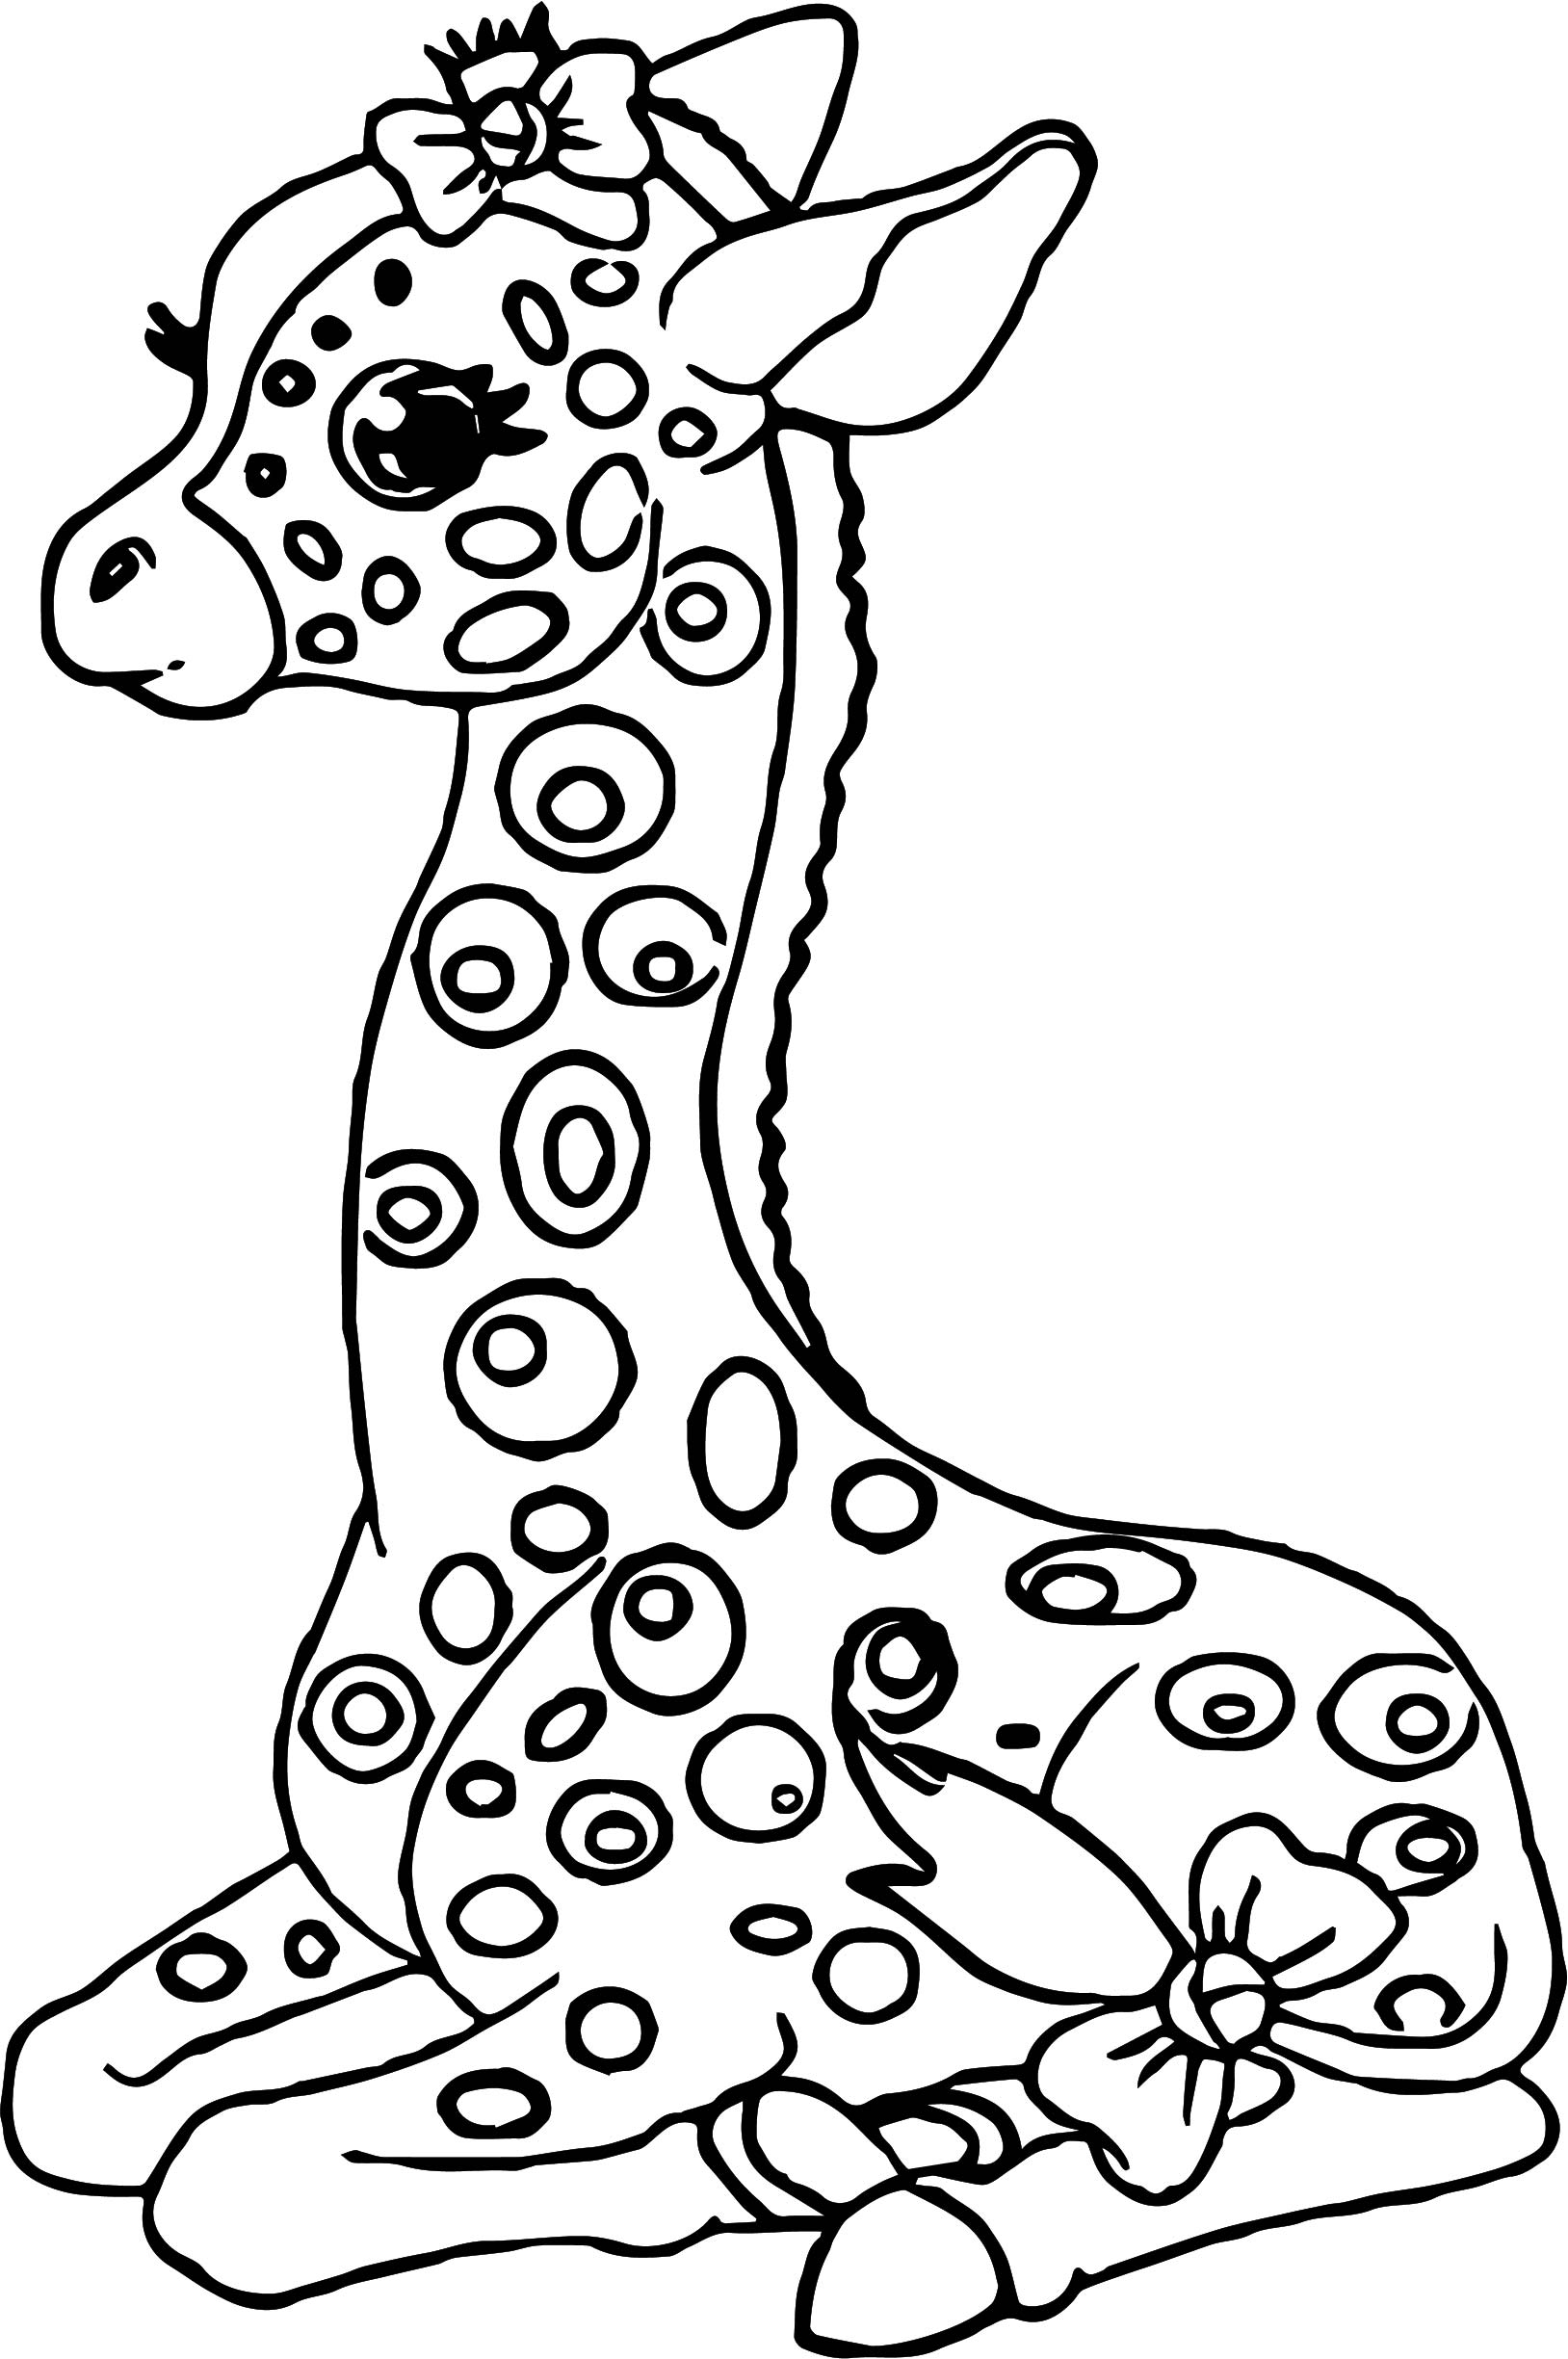 coloring sheets giraffe giraffes coloring pages to download and print for free giraffe coloring sheets